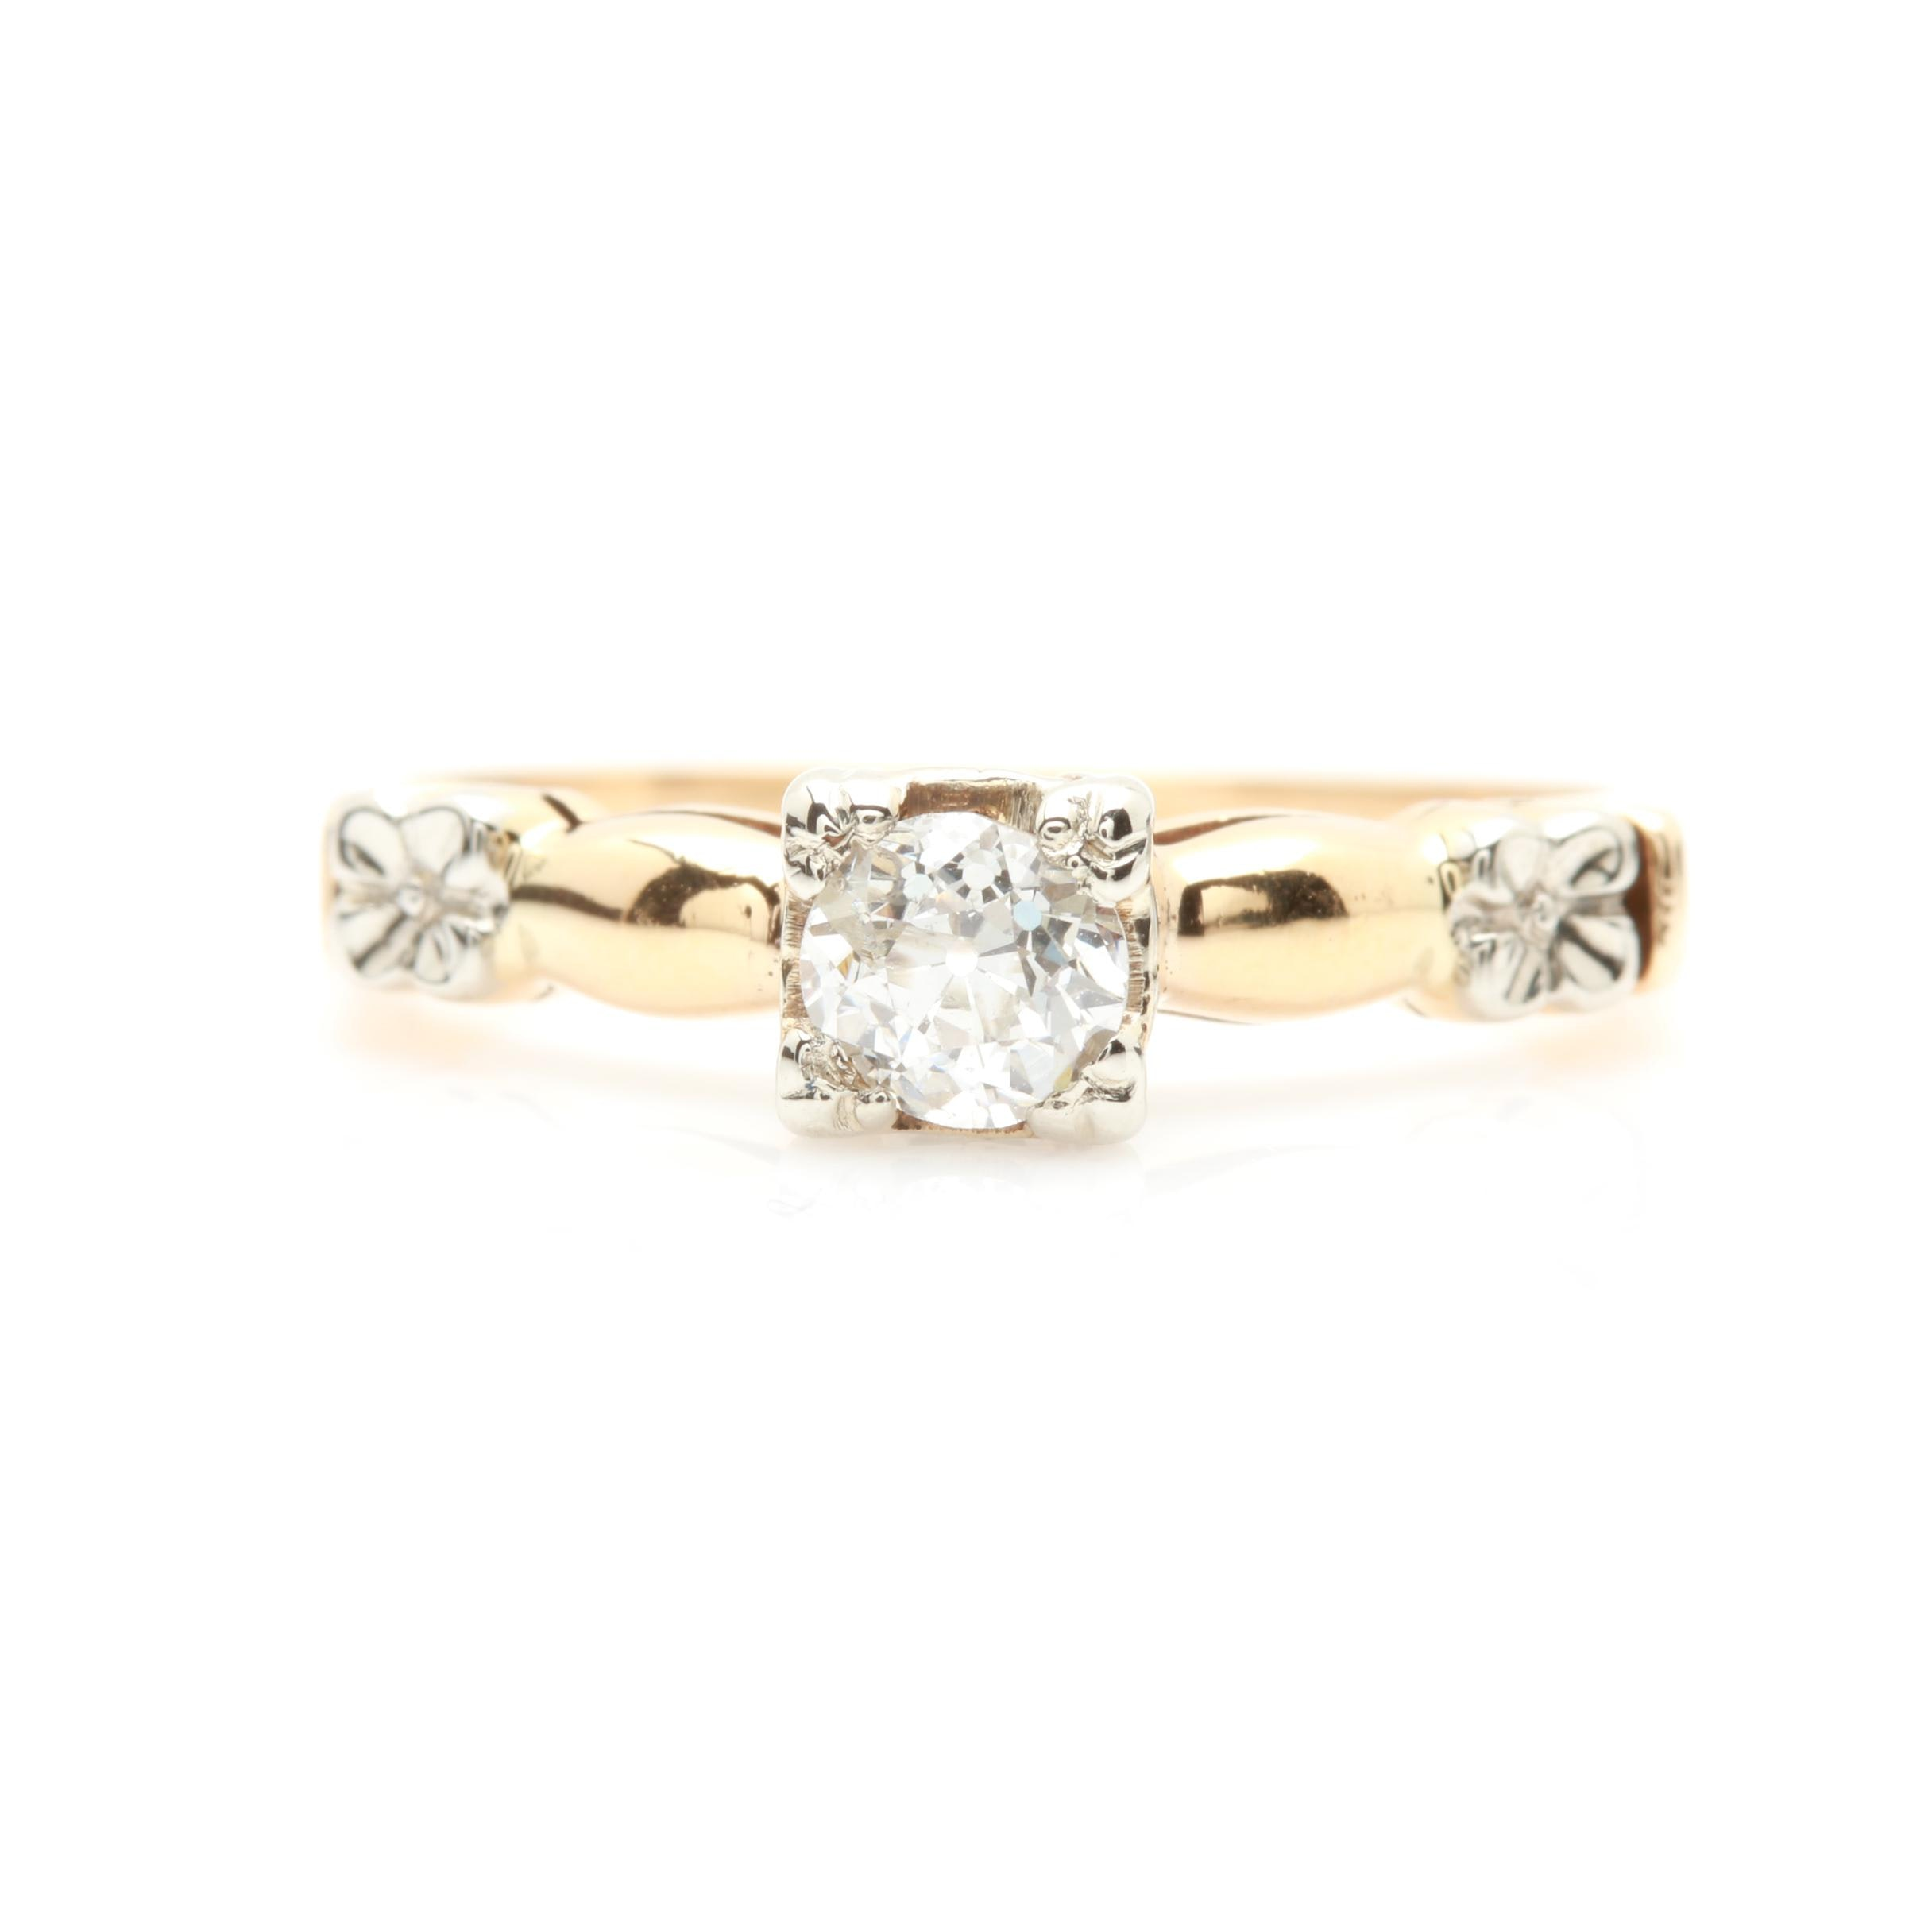 14K Yellow Gold Diamond Ring with 14K White Gold Accents